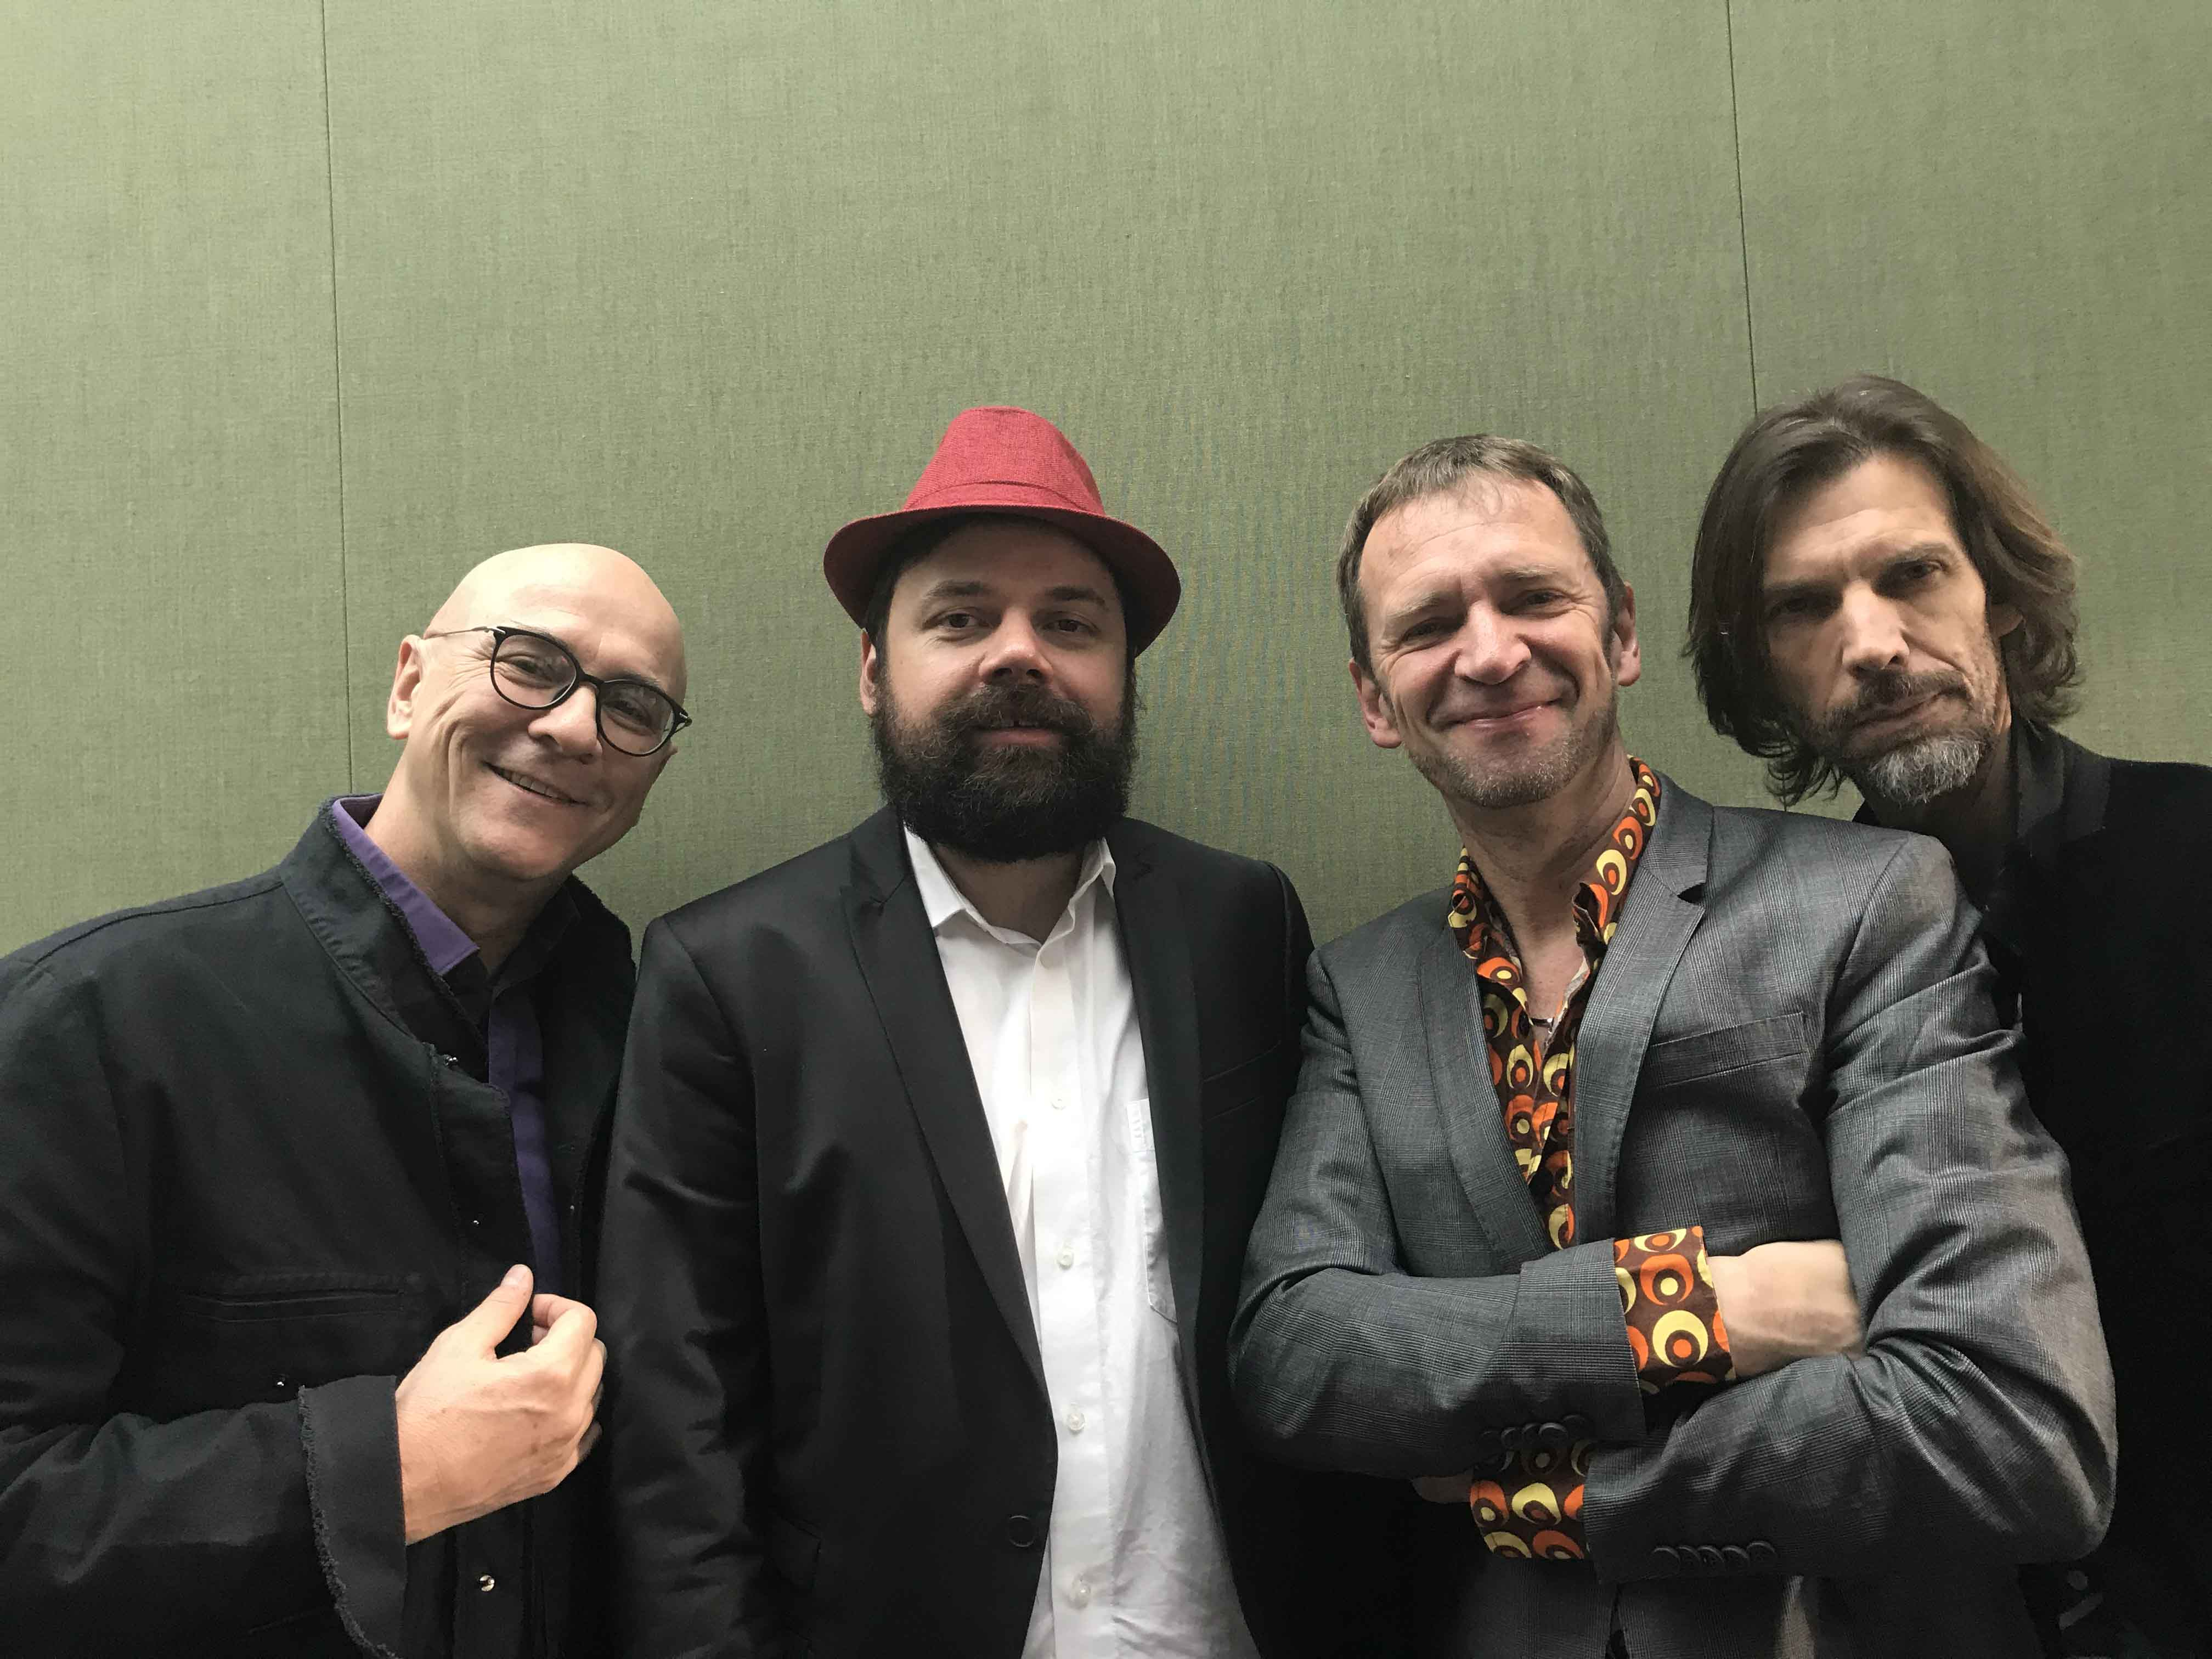 Ecco DiLorenzo Jazz Quartett